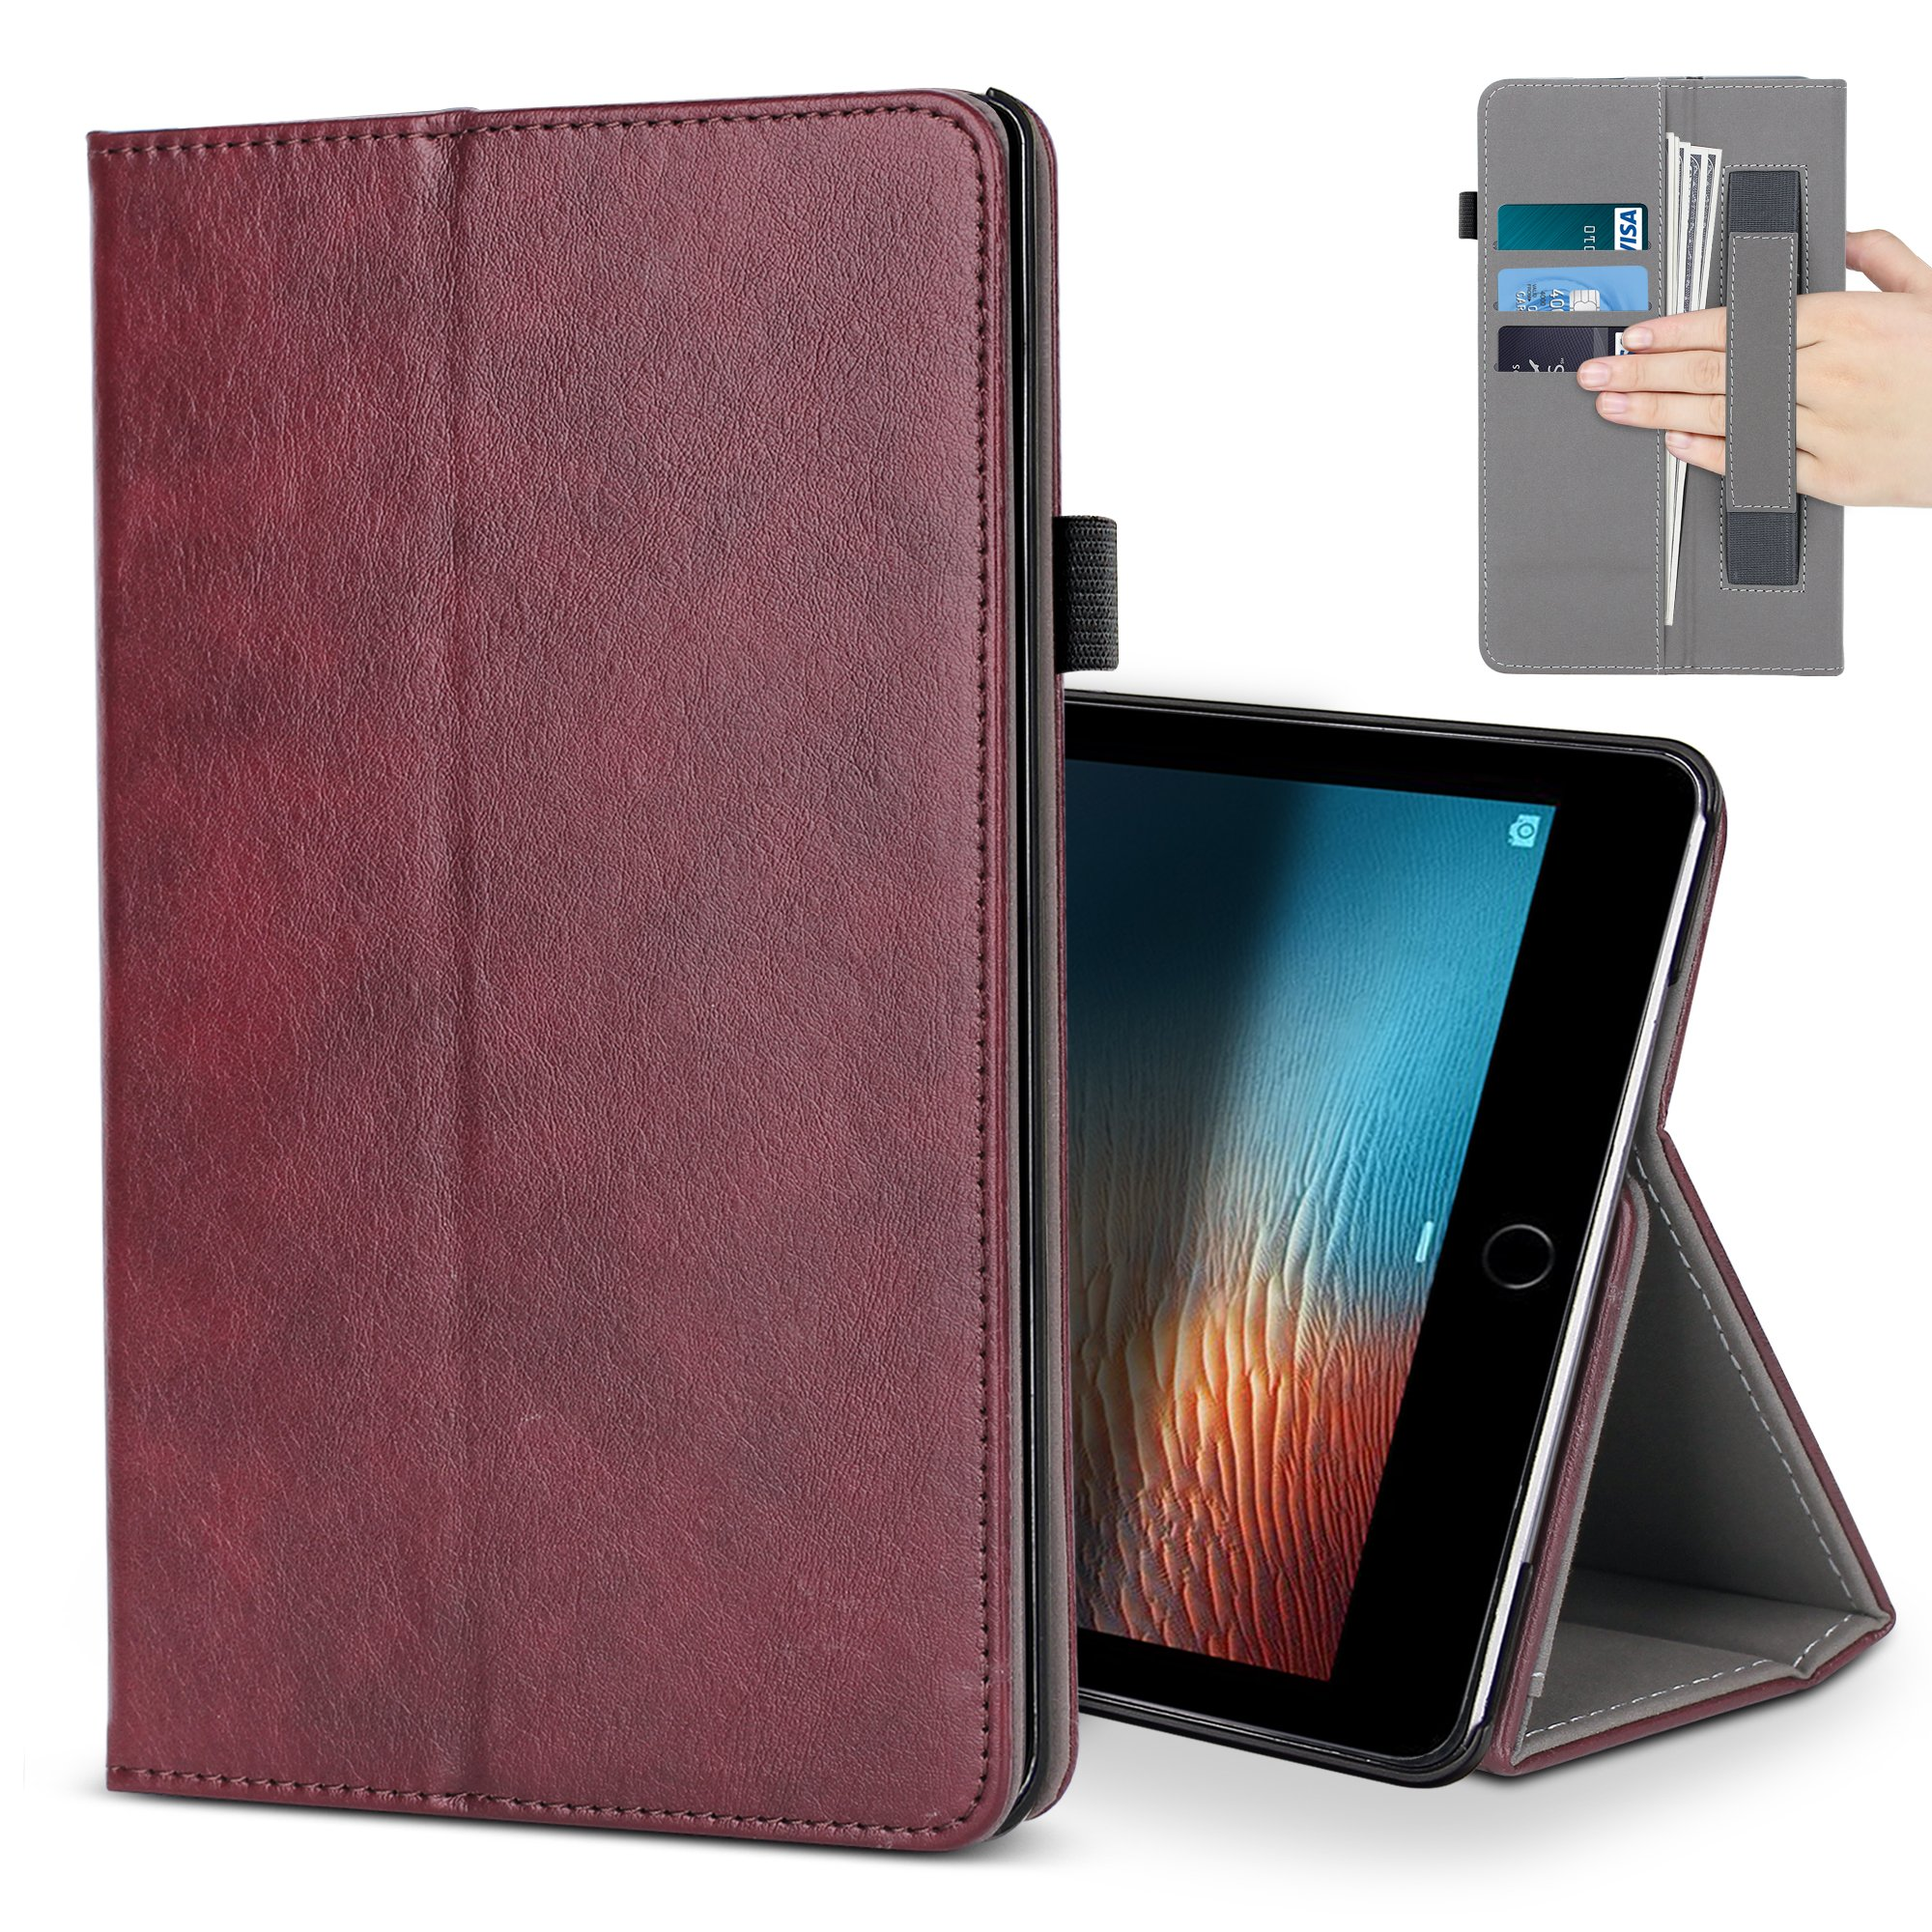 iPad Pro 12.9 Case,B BELK Premium Leather Multiple Viewing Stand Cover with Hand Strap, Auto Wake/Sleep Smart Folio Flip Card Holder for 2017 Release Apple iPad Pro 2 12.9 Inch (Red)